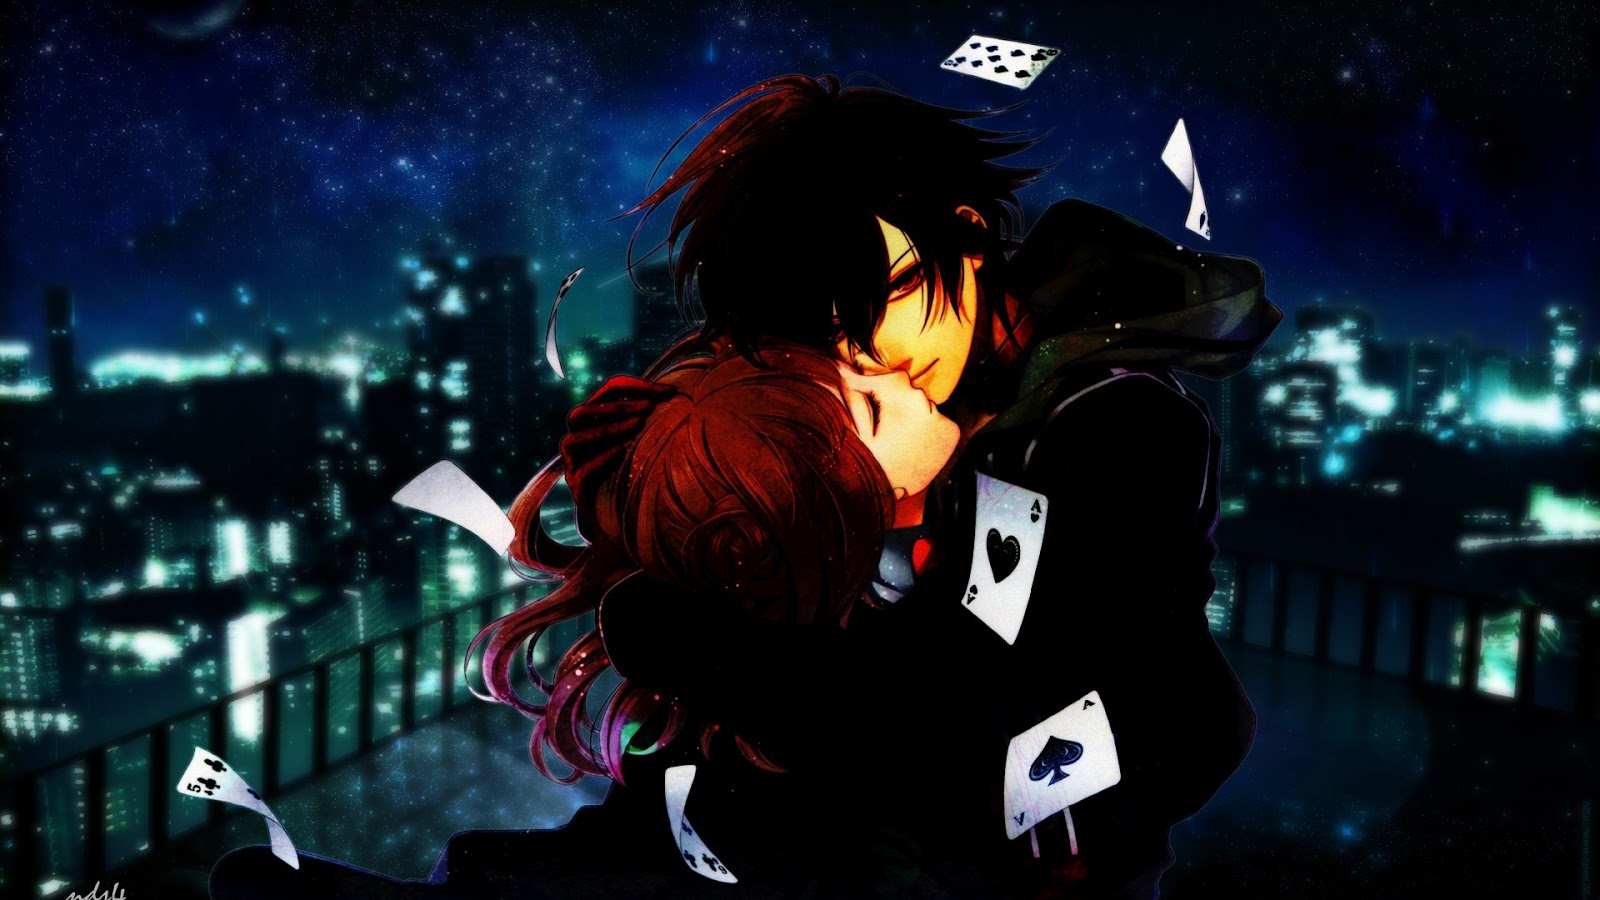 Sweet Couple Kissing Cards Anime HD Wallpaper Desktop PC Background 1600x900